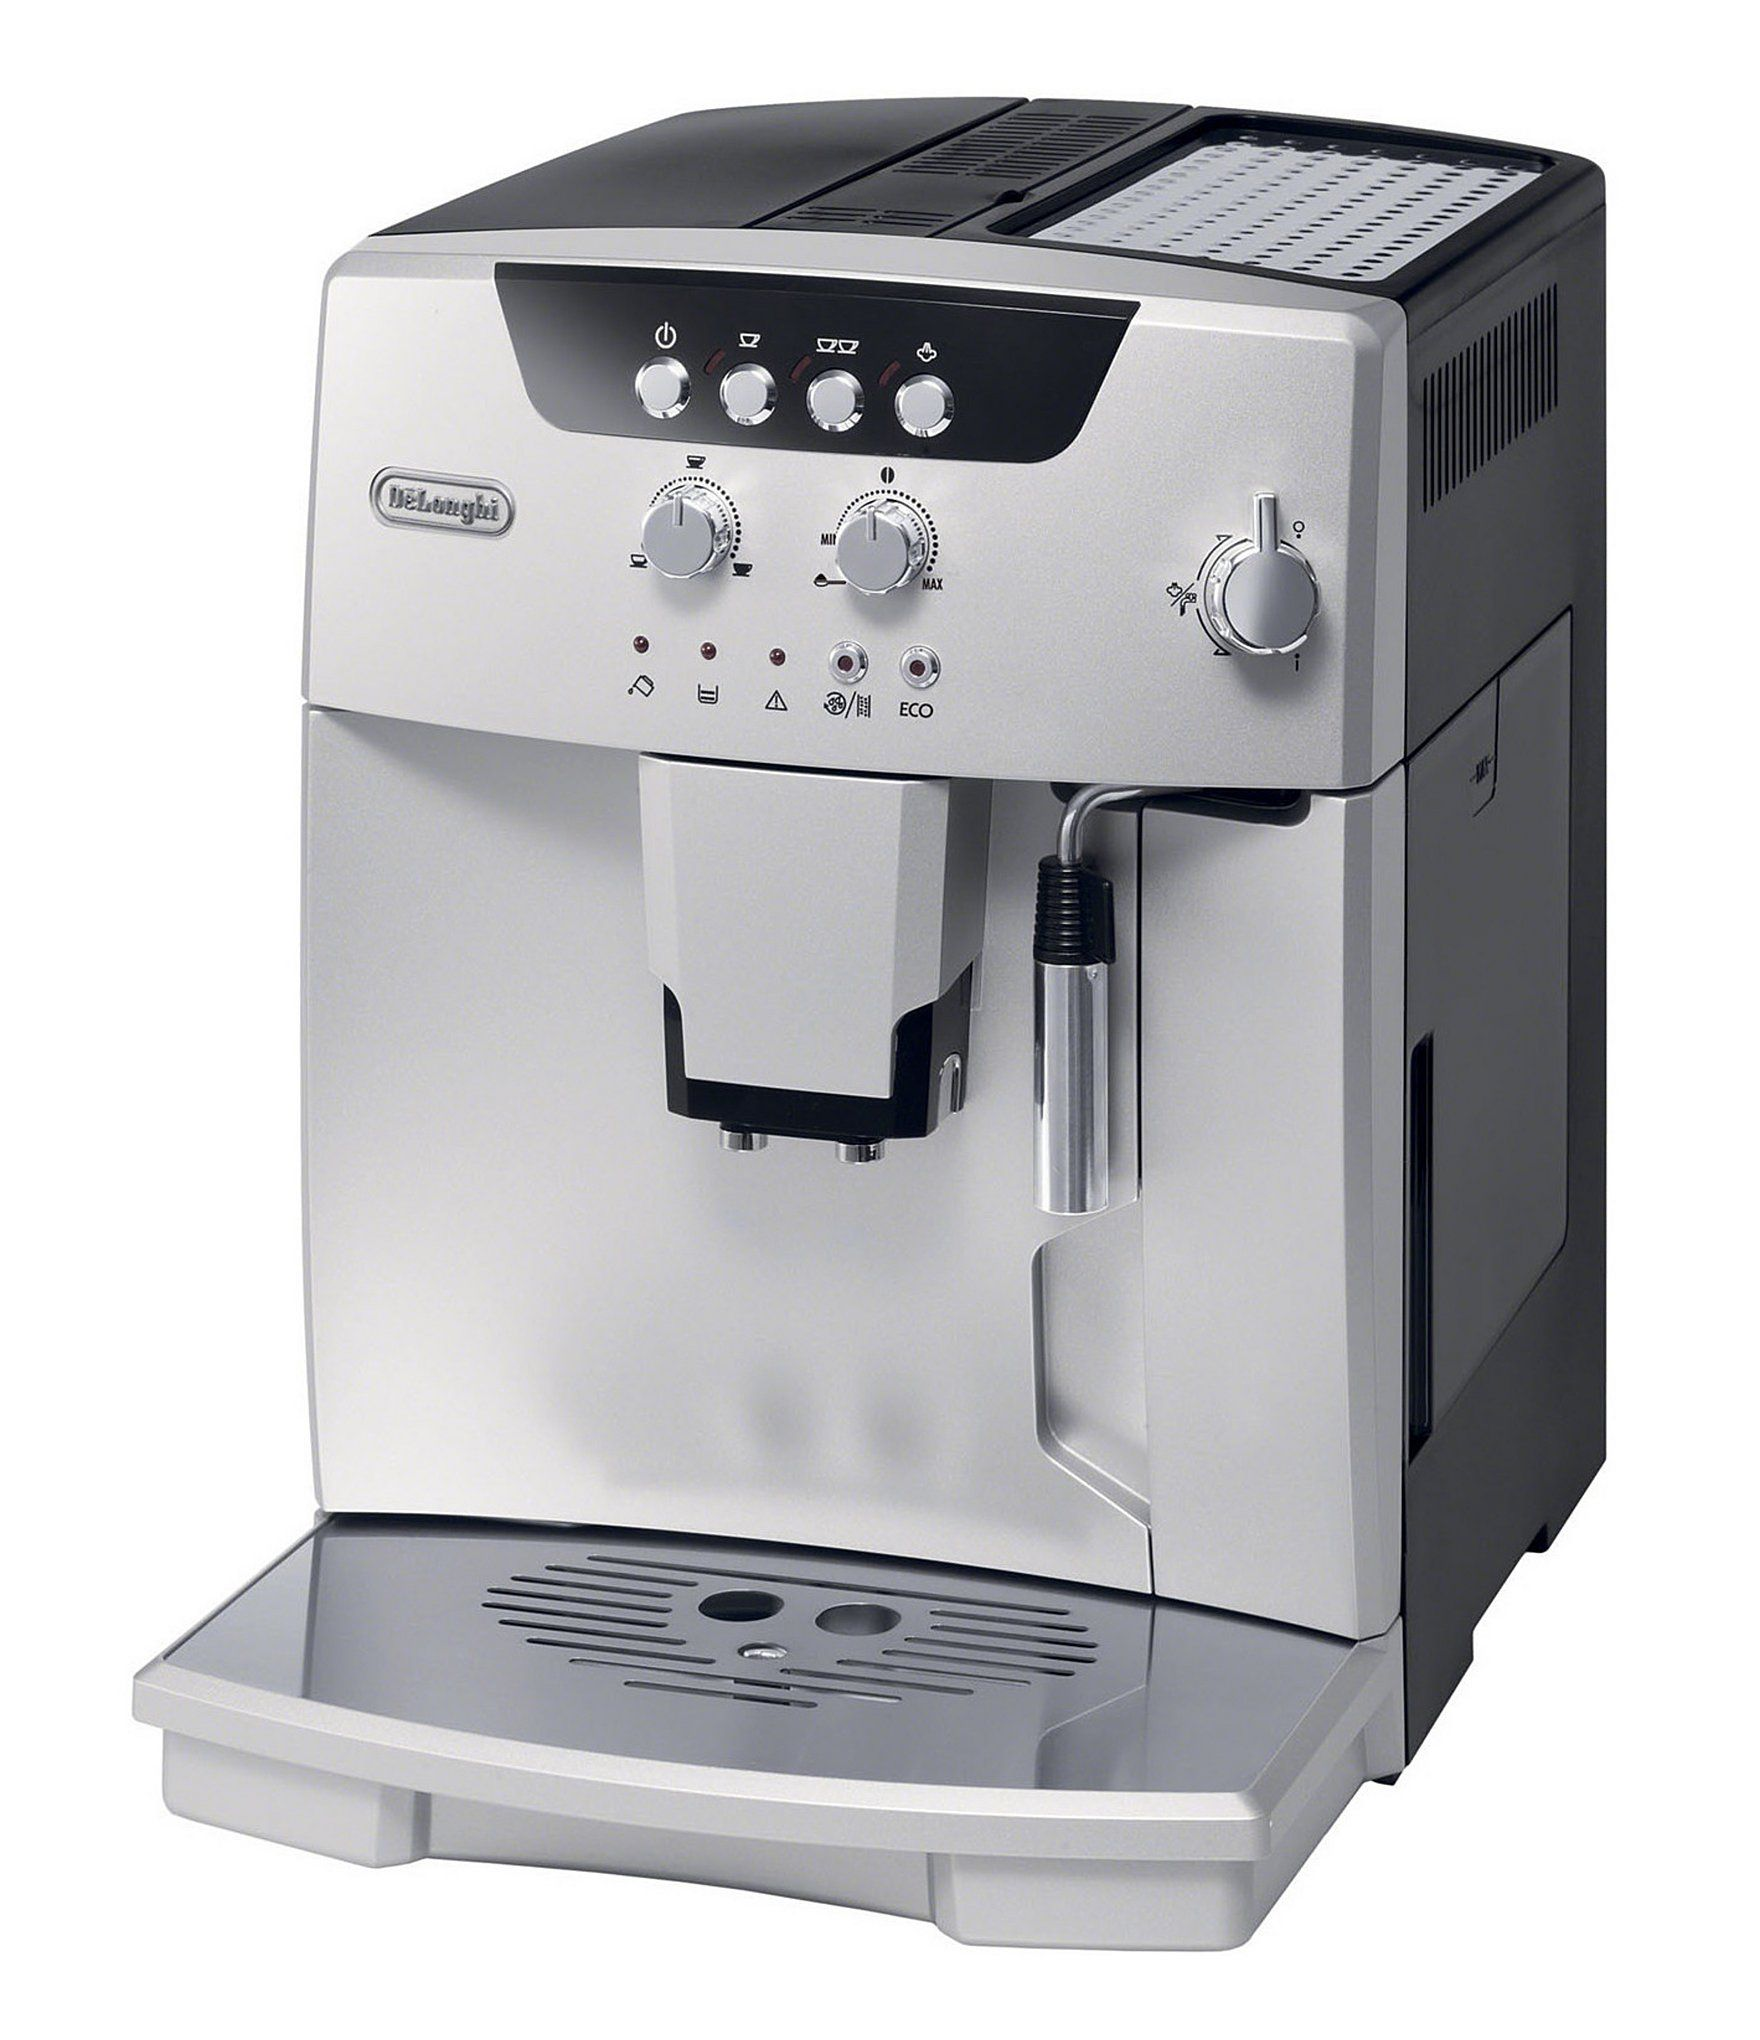 DeLonghi Magnifica Alln1 Espresso and Cappuccino Machine